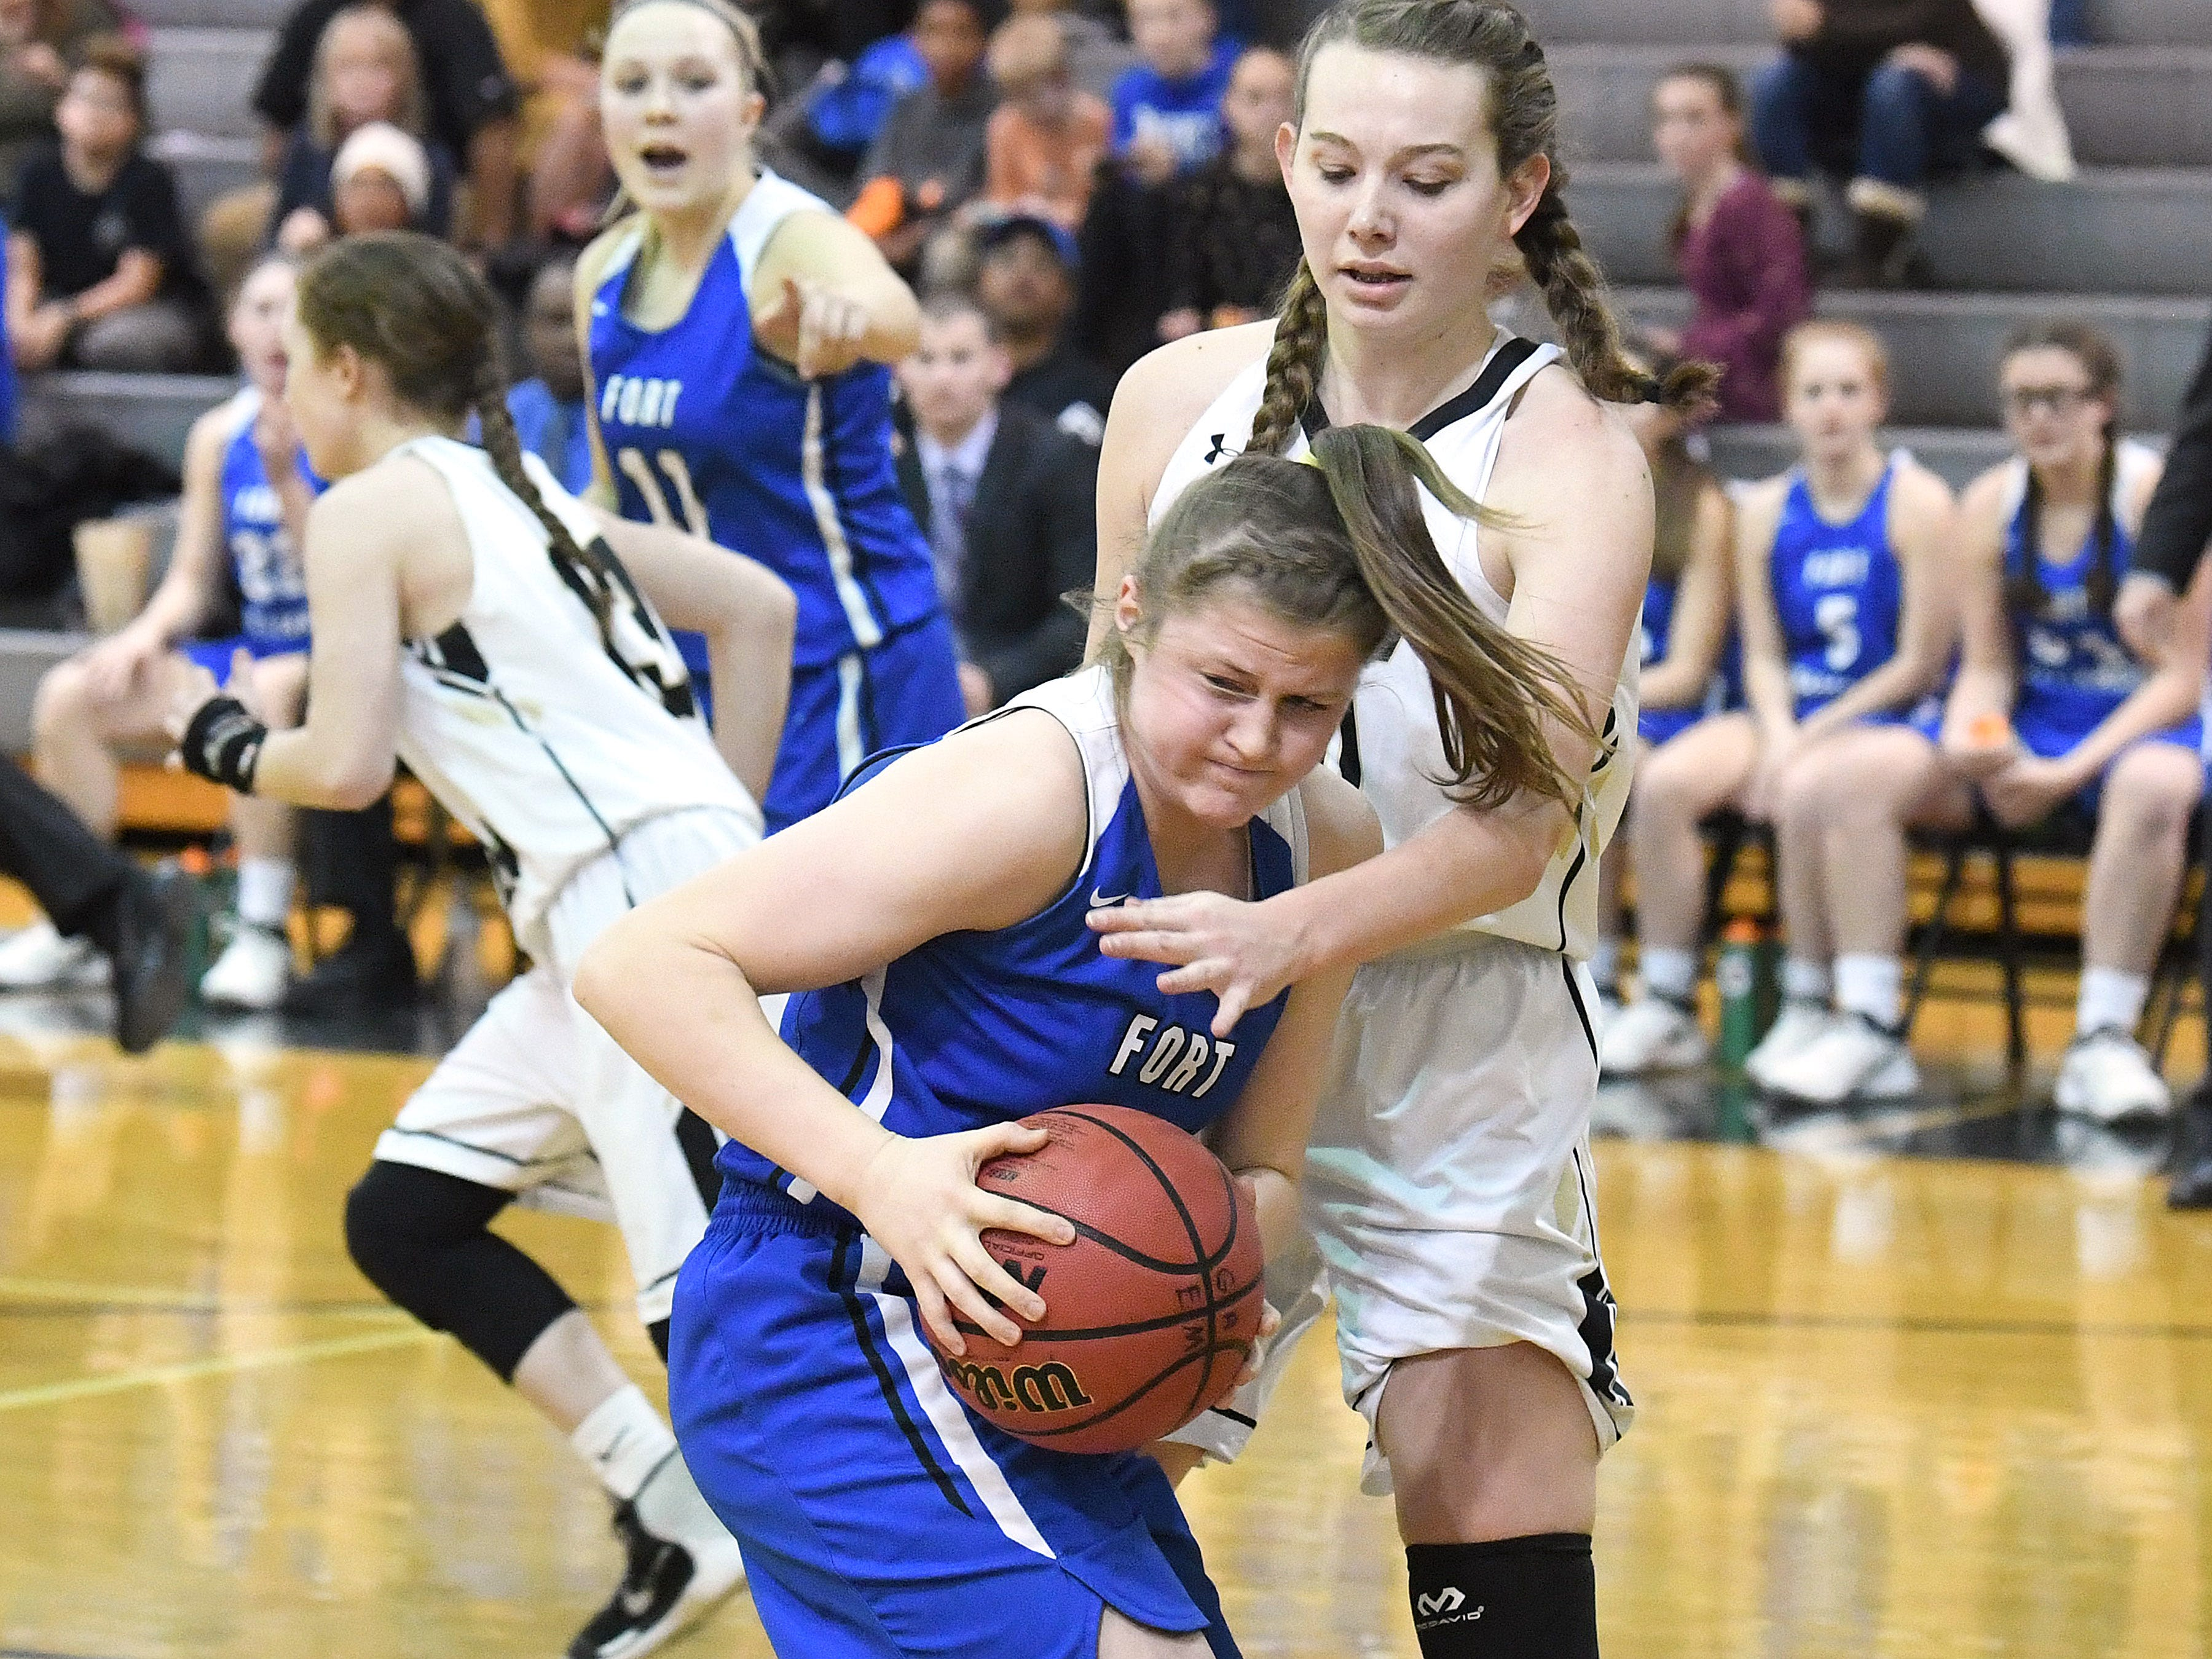 Fort Defiance's Lilian Berry comes away with the rebound, getting to it before Buffalo Gap's Sagasta Massie during a game played in Swoope on Wednesday, Dec. 5, 2018.